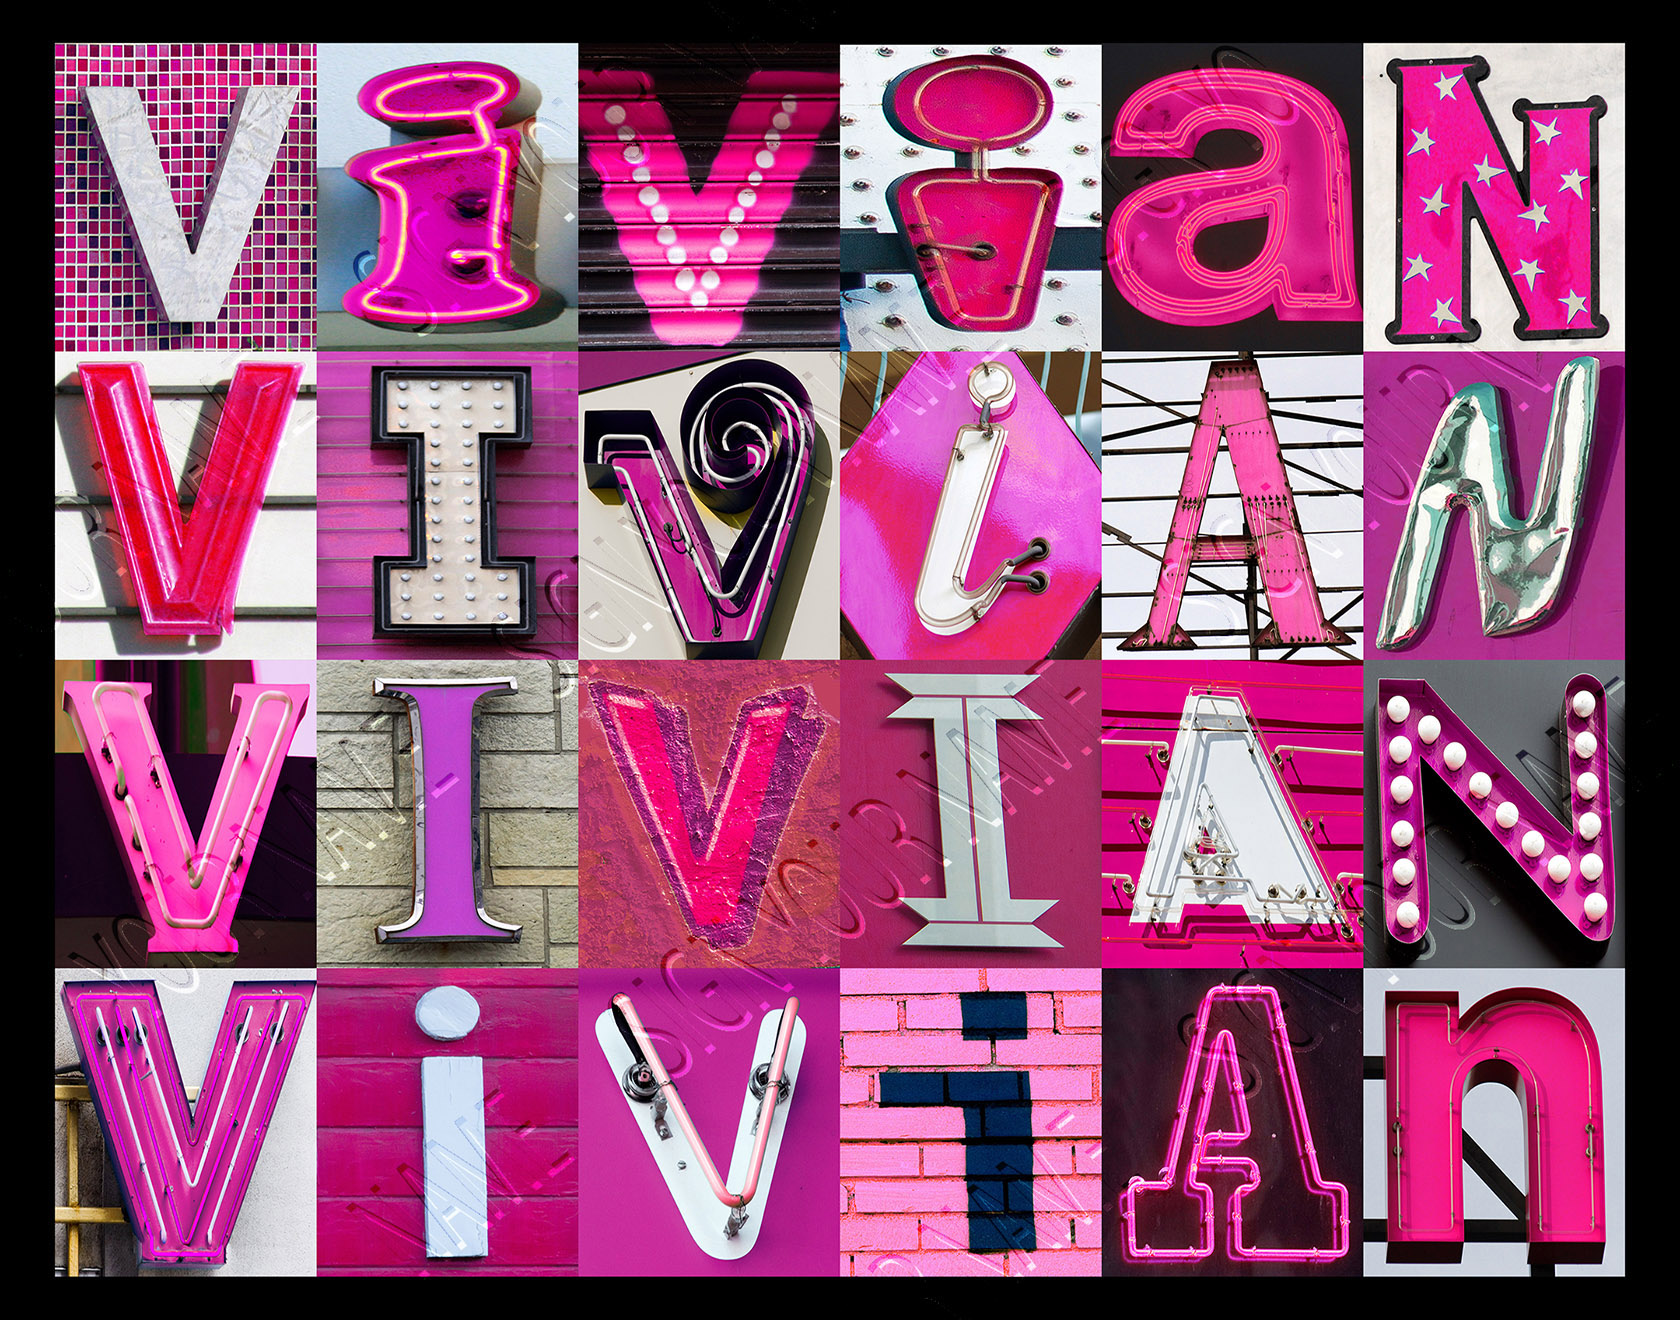 https://www.etsy.com/listing/257988774/personalized-poster-featuring-vivian-in?ref=shop_home_active_1&ga_search_query=vivian